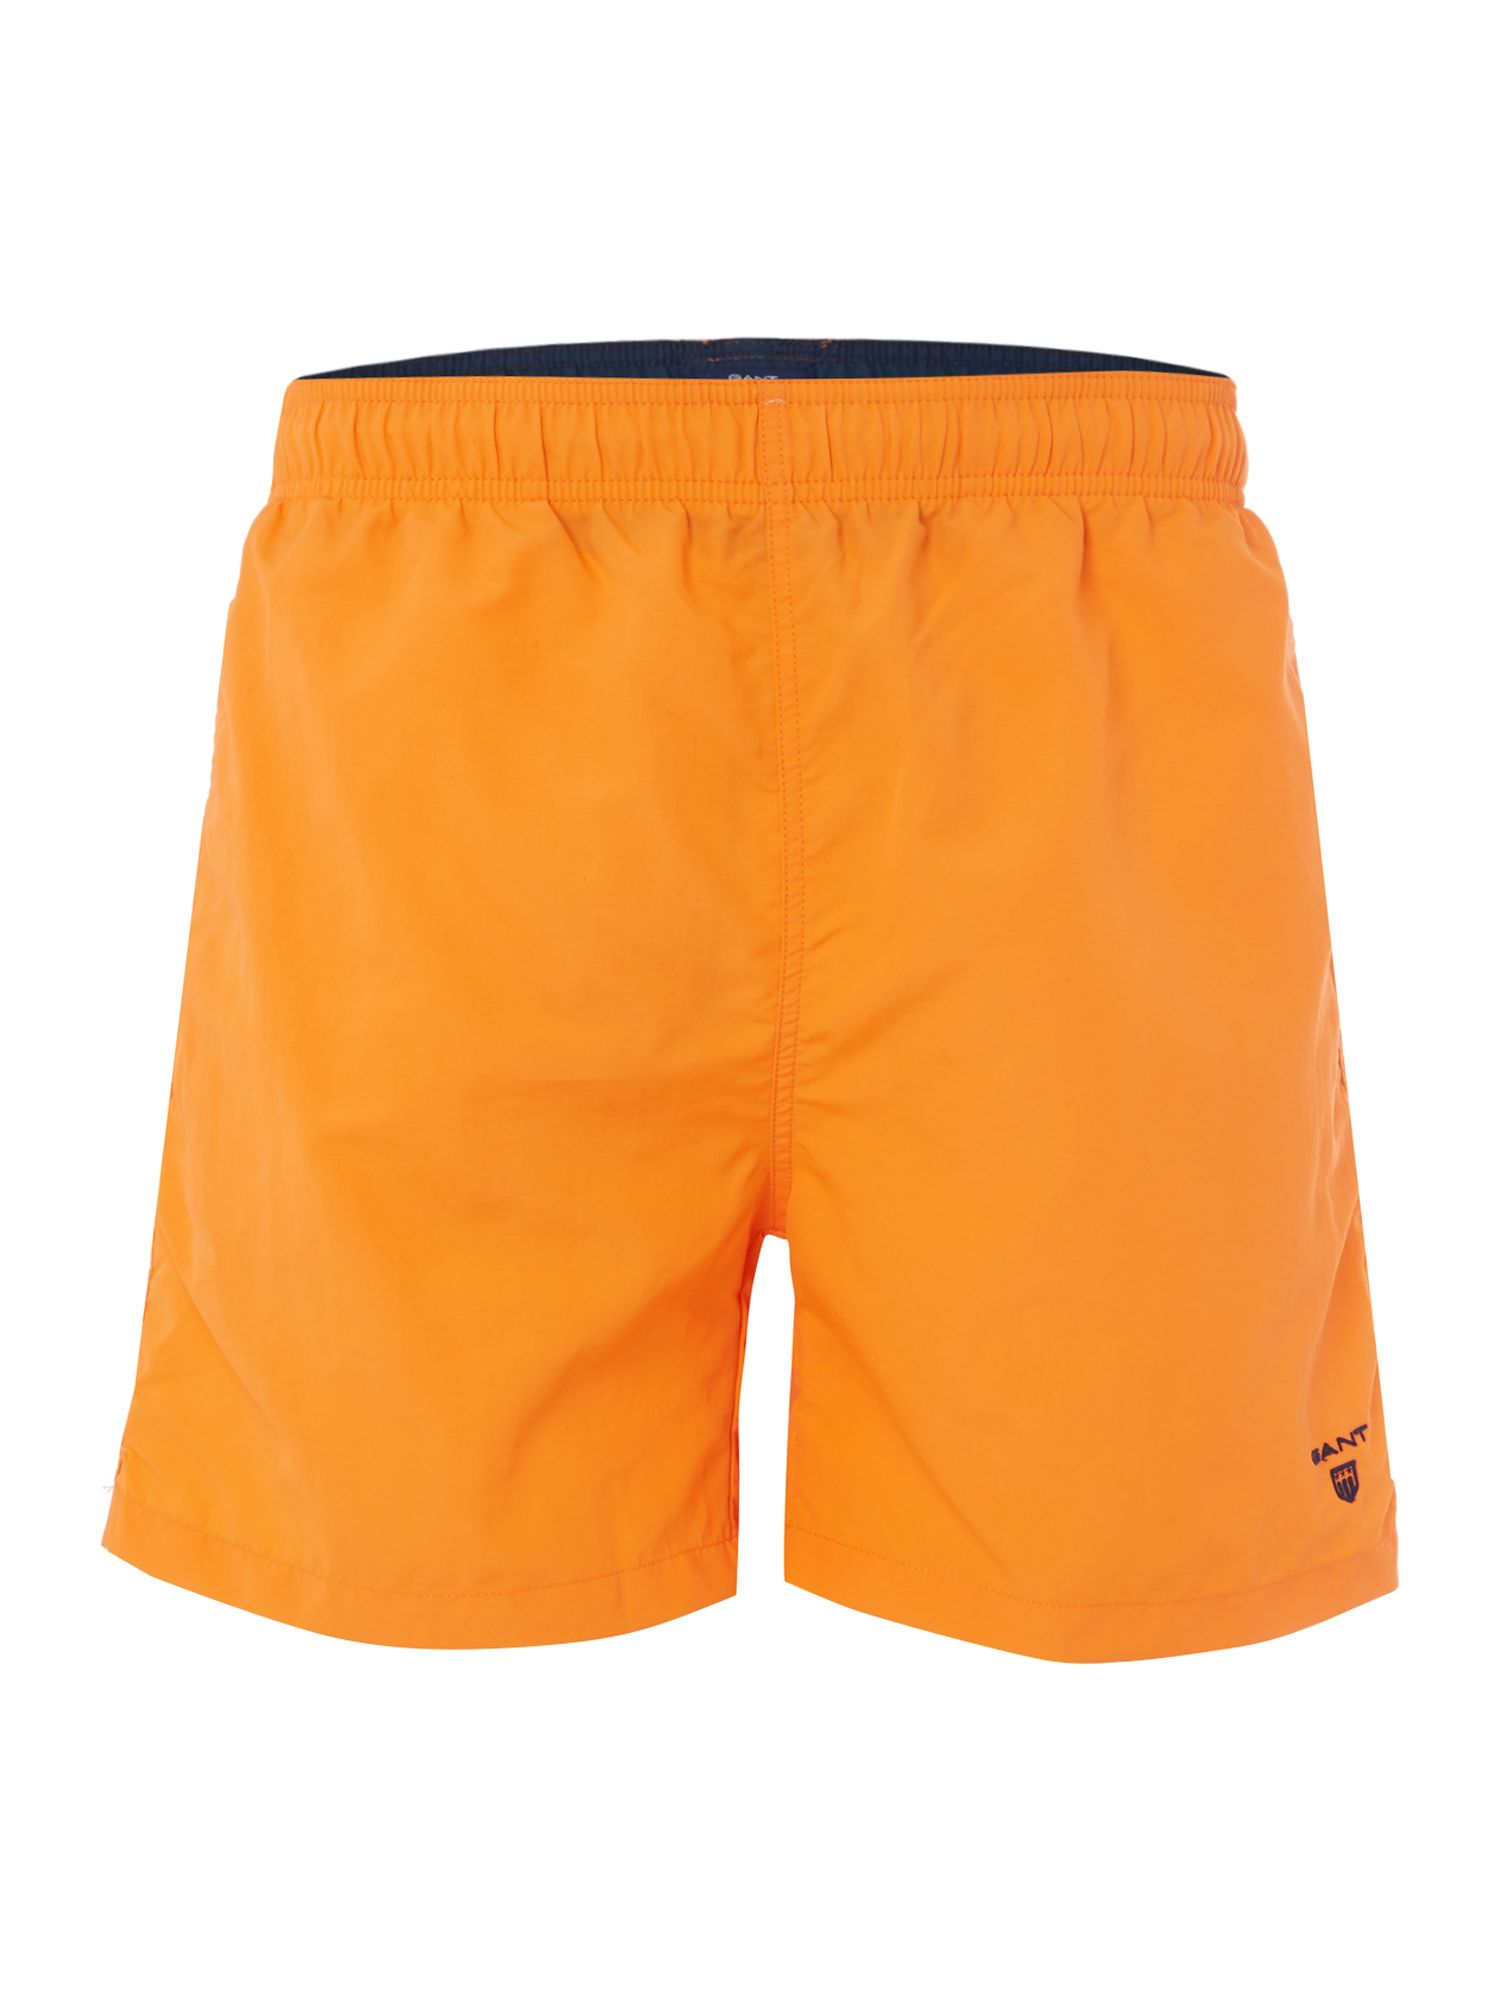 Mens Gant Classic swim shorts Orange